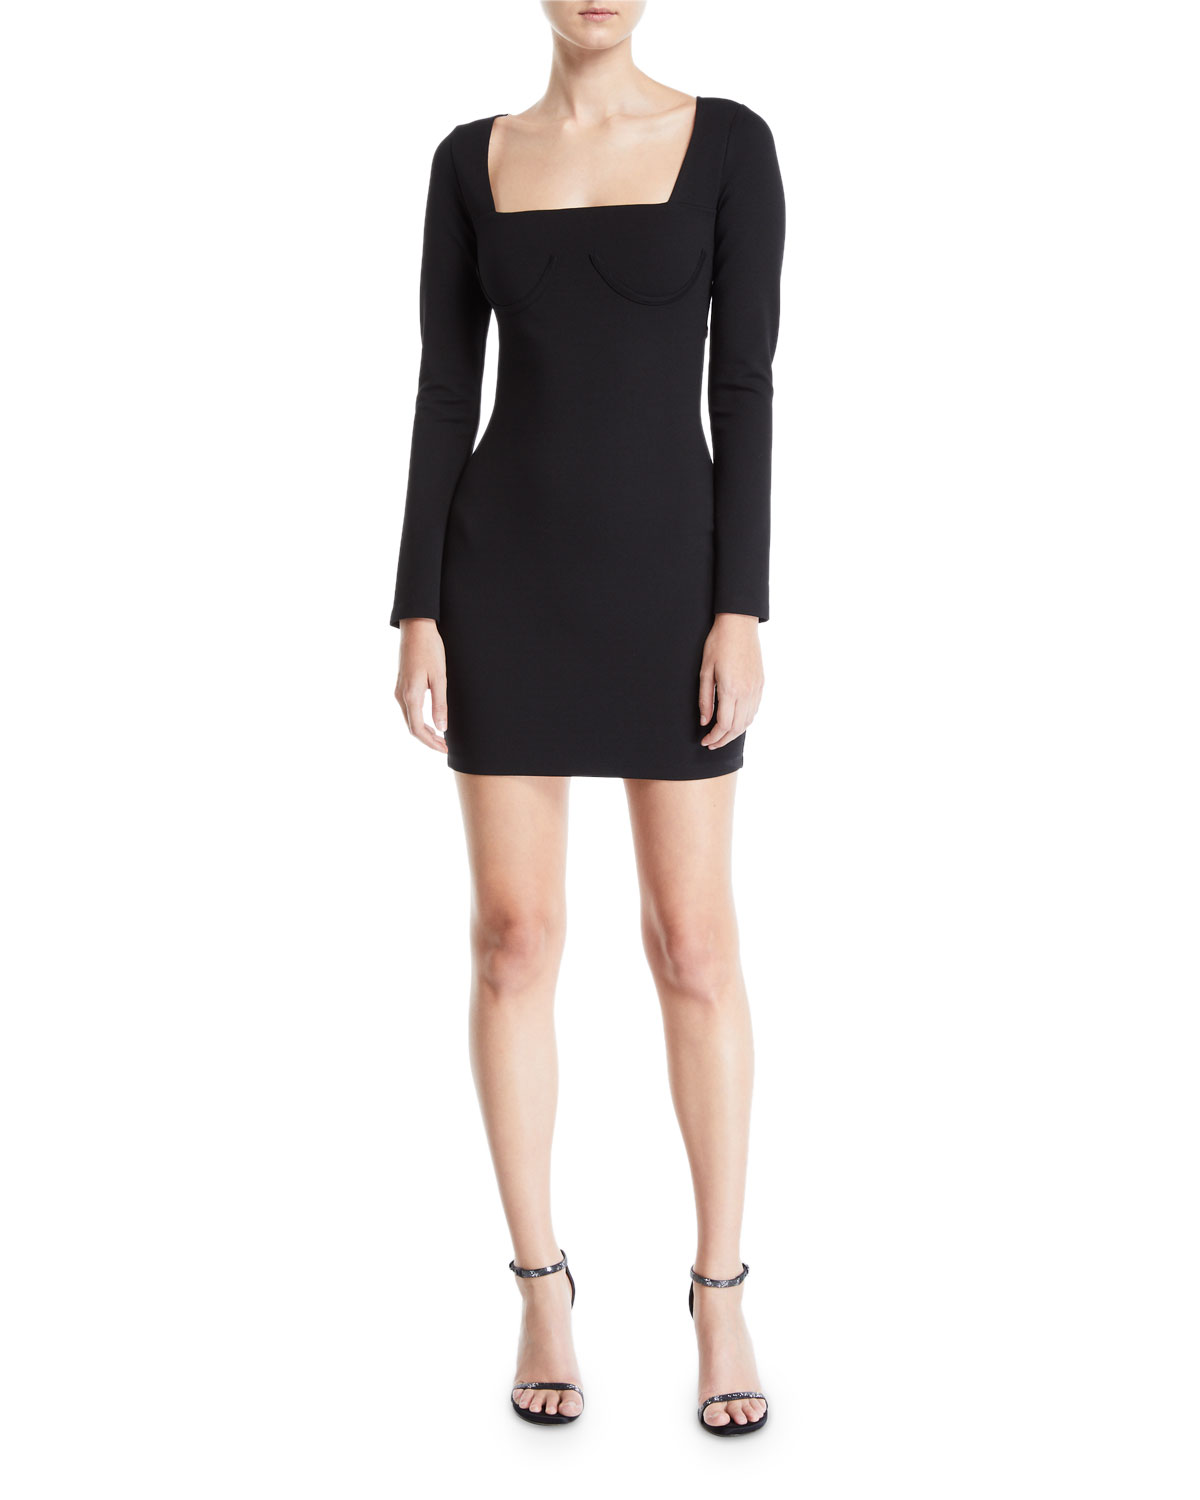 DONNA MIZANI Romana Long-Sleeve Cutout-Back Mini Dress in Black